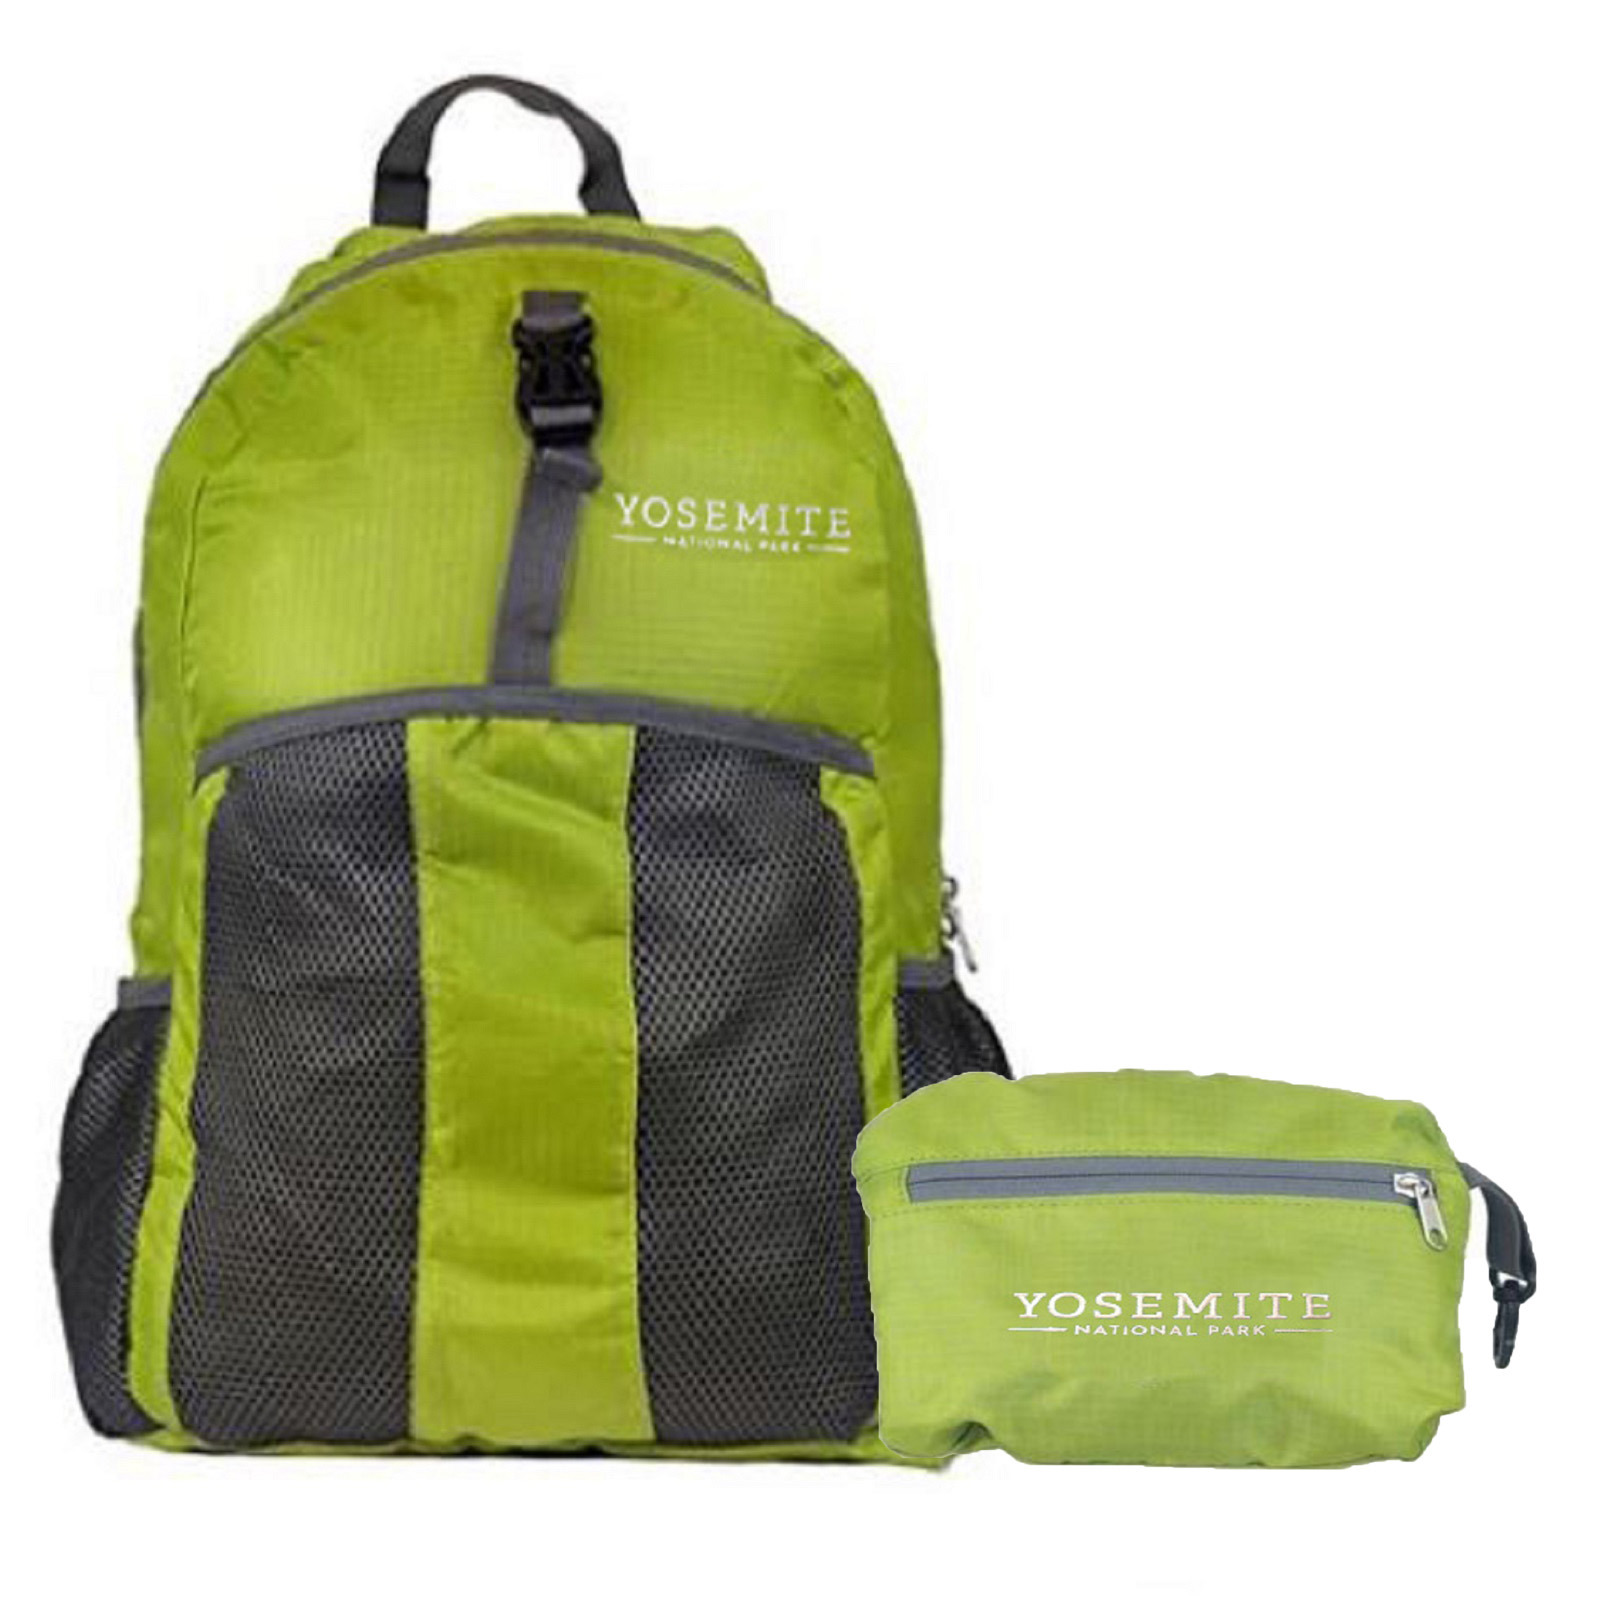 Collapsible Backpack Yosemite Online Store Official